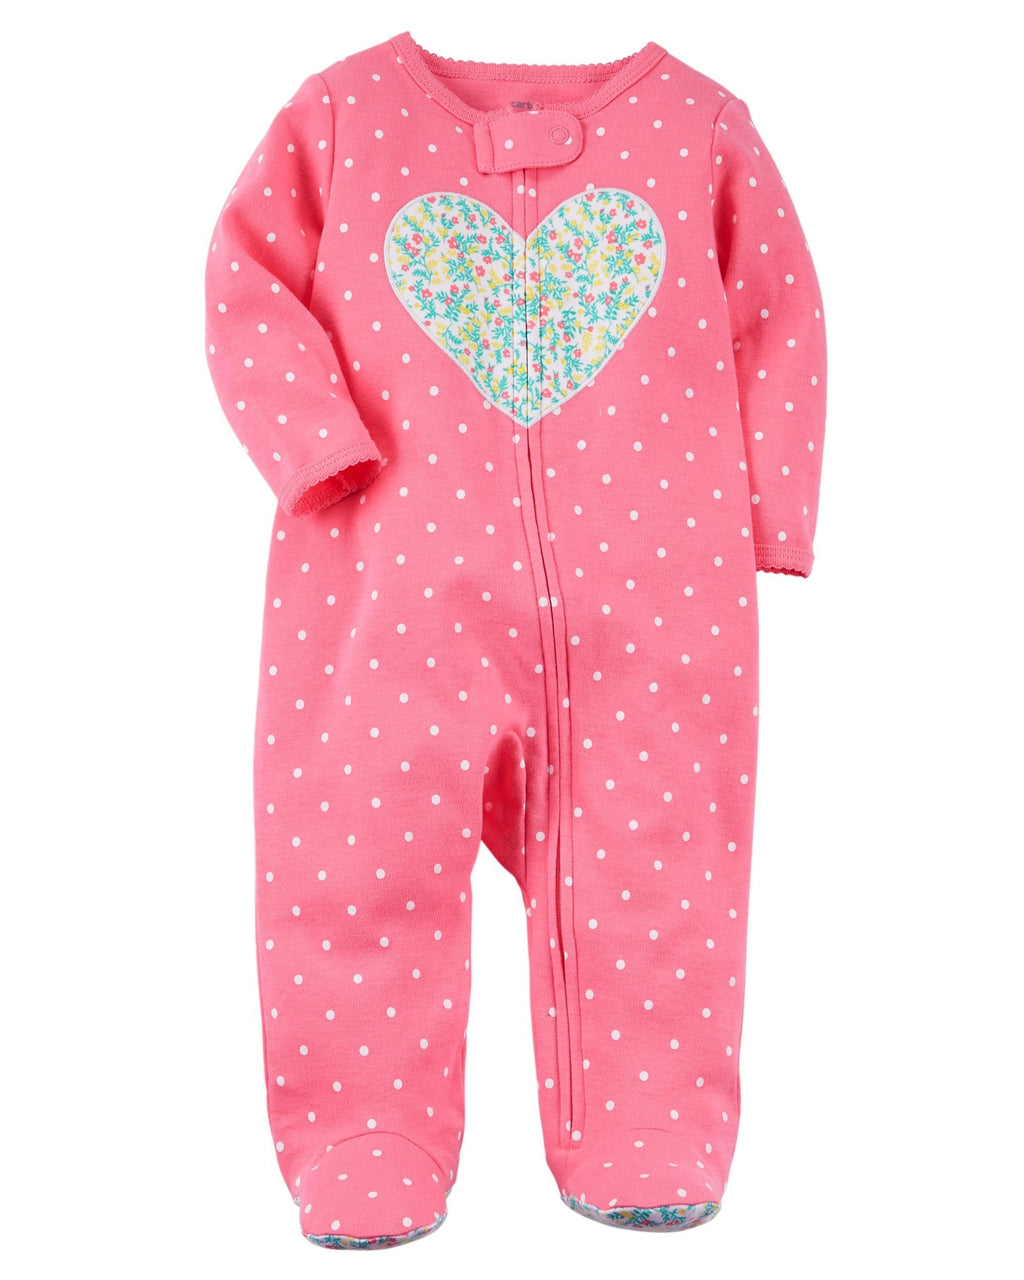 Enterito CARTERS Zip-Up Heart Cotton Sleep & Play